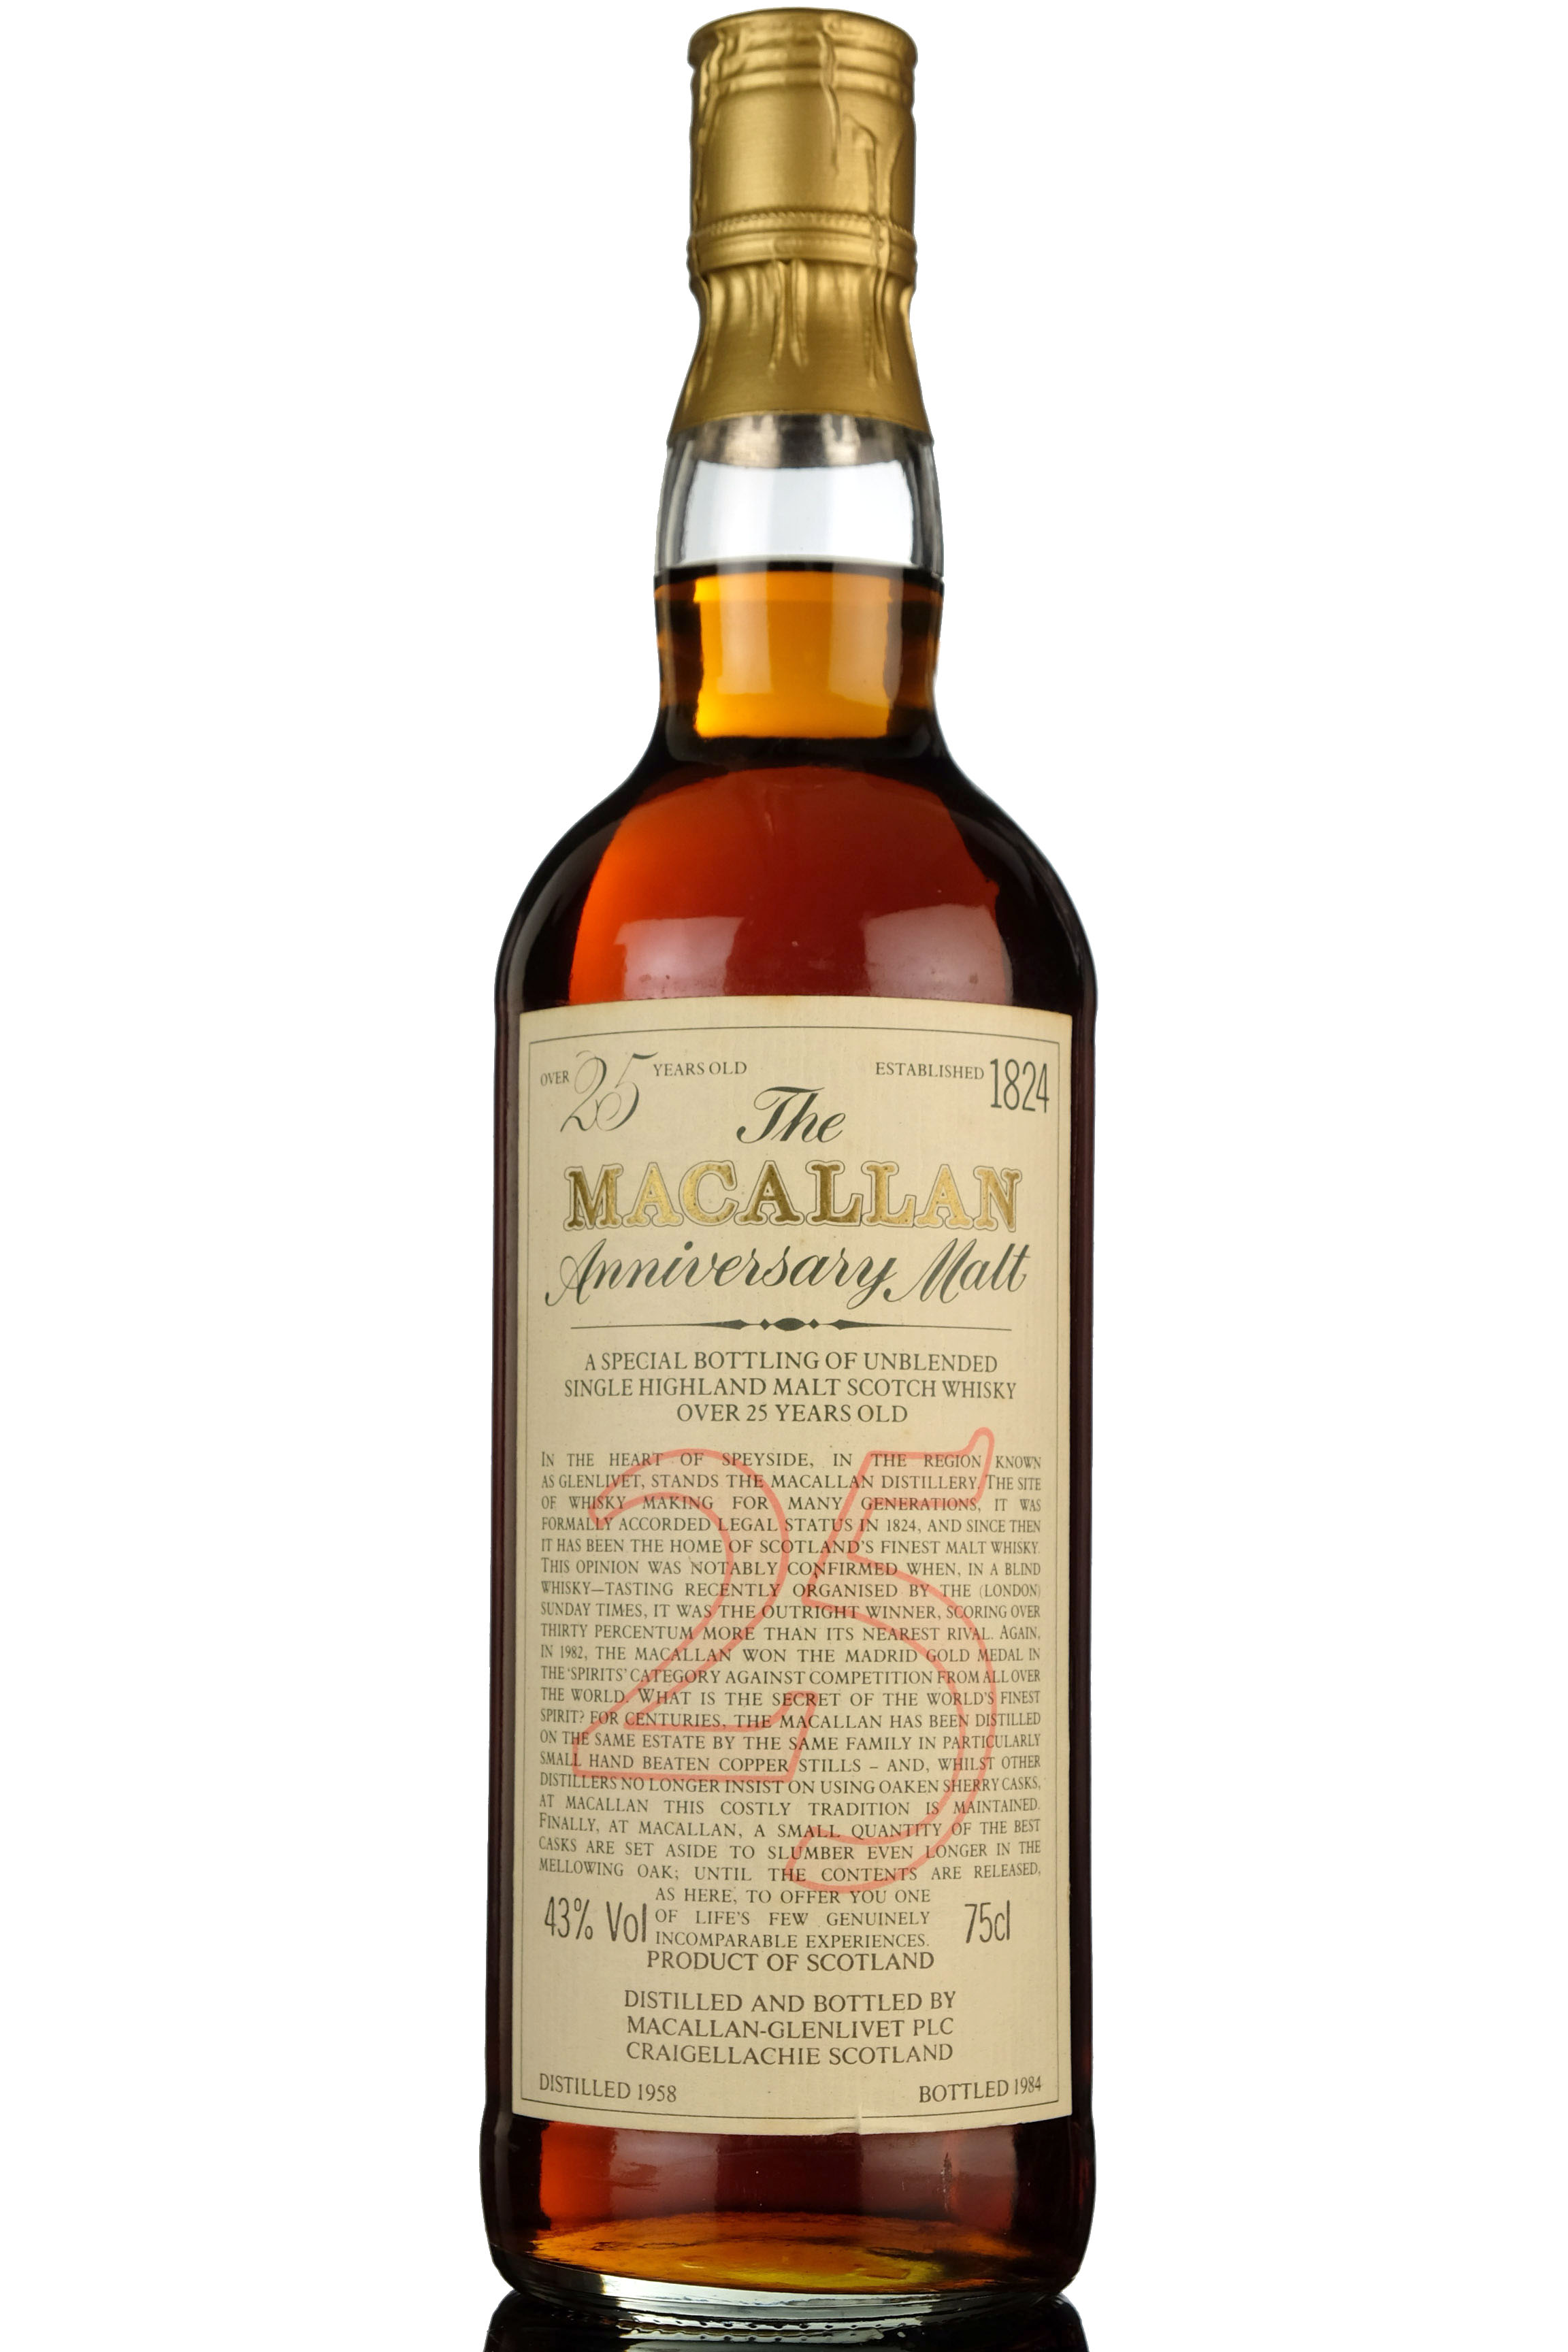 macallan 1958-1984 - 25 year old anniversary malt